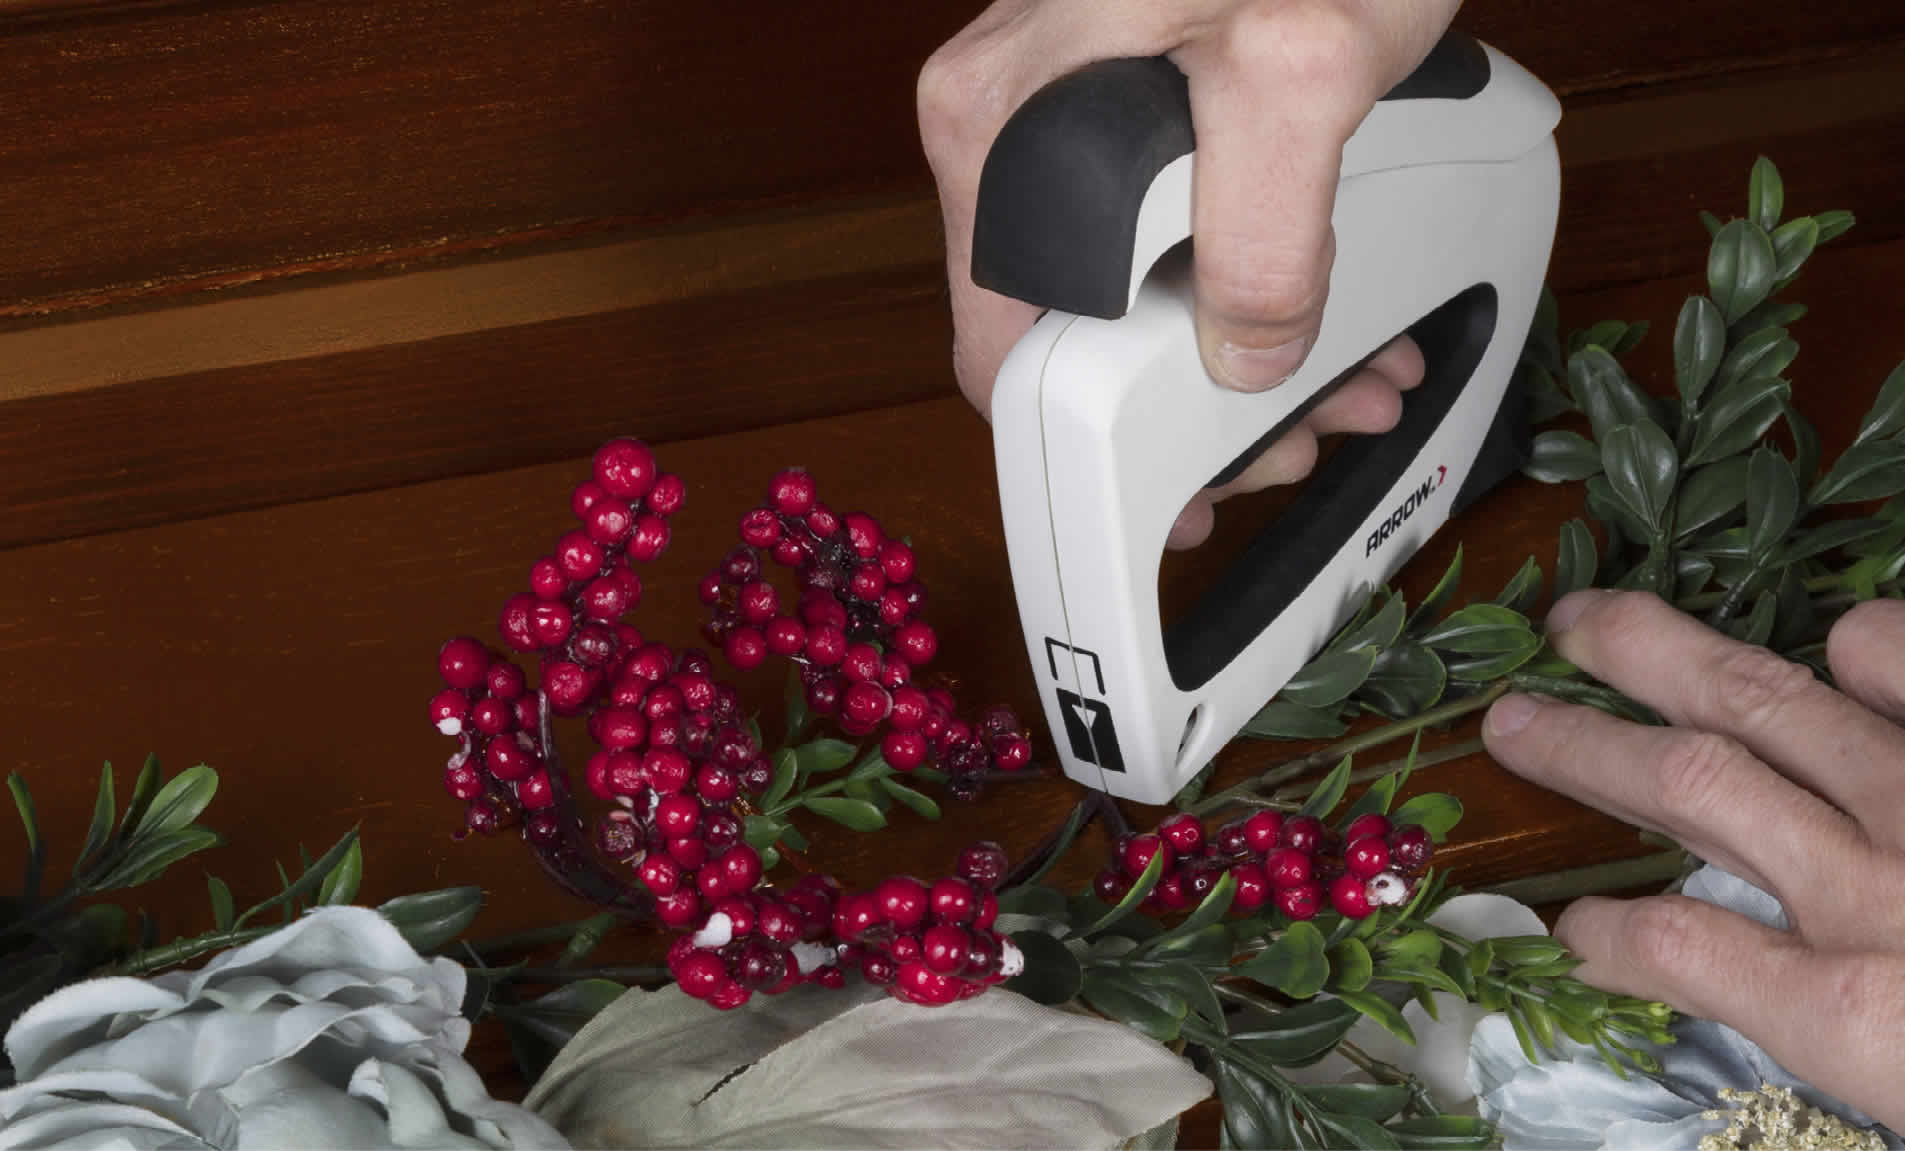 Arrow TT21 TruTac staple gun stapling garland to mantel